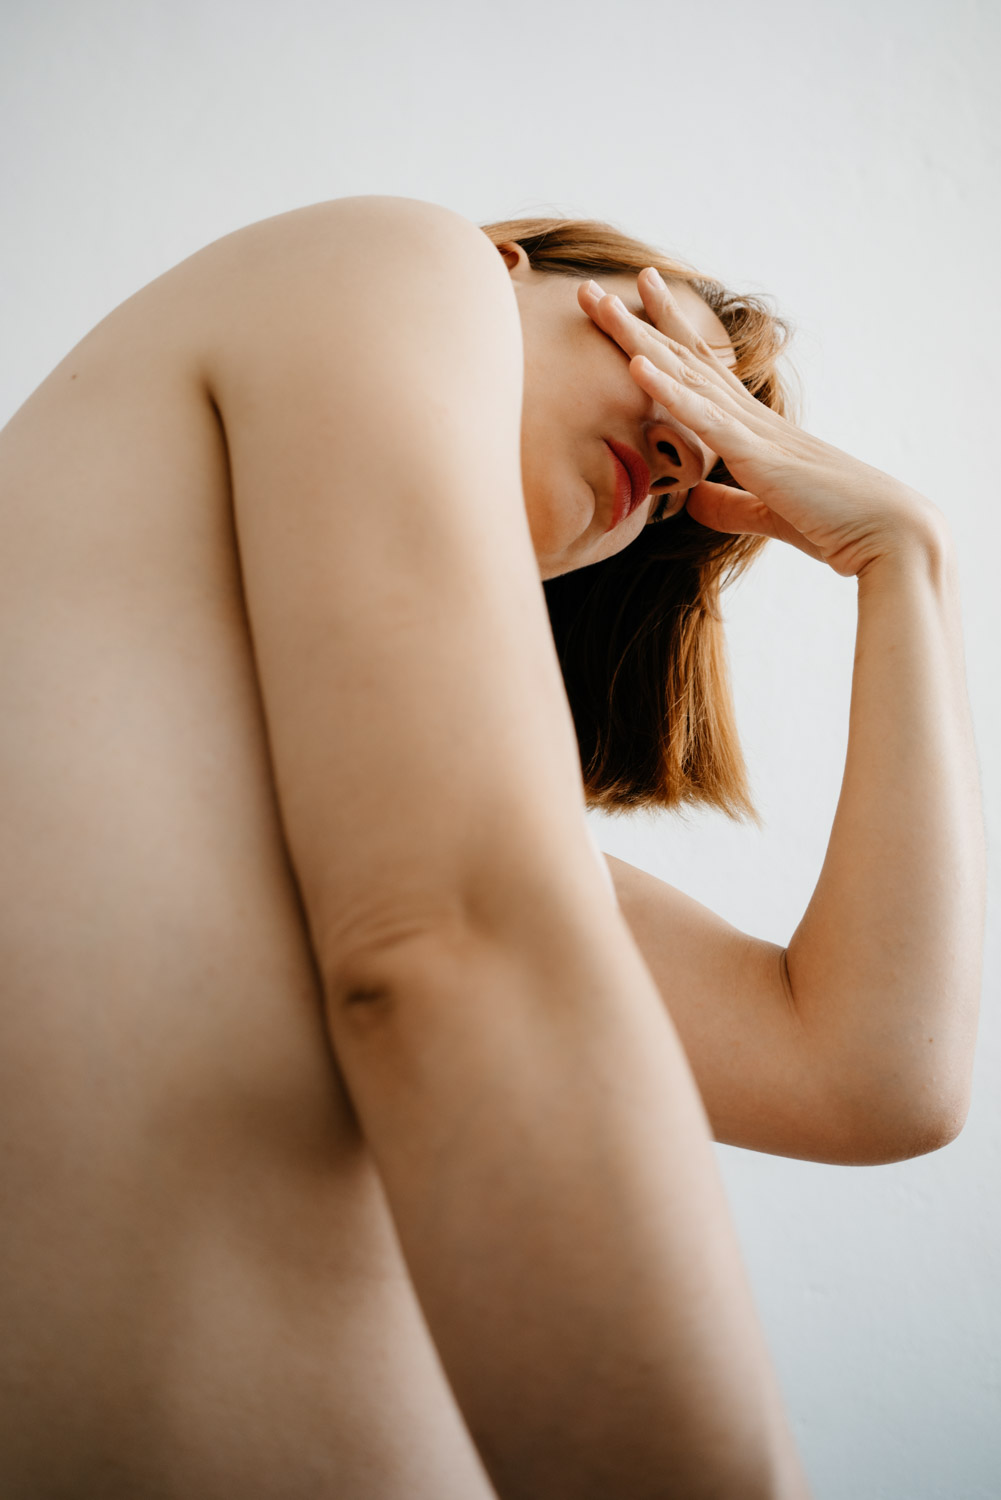 Delphine Millet Fagments - Body chest cry hands pain vulnerable dance human condition lonely photography minimalist graphic delicate - Art conceptual photographer in Berlin